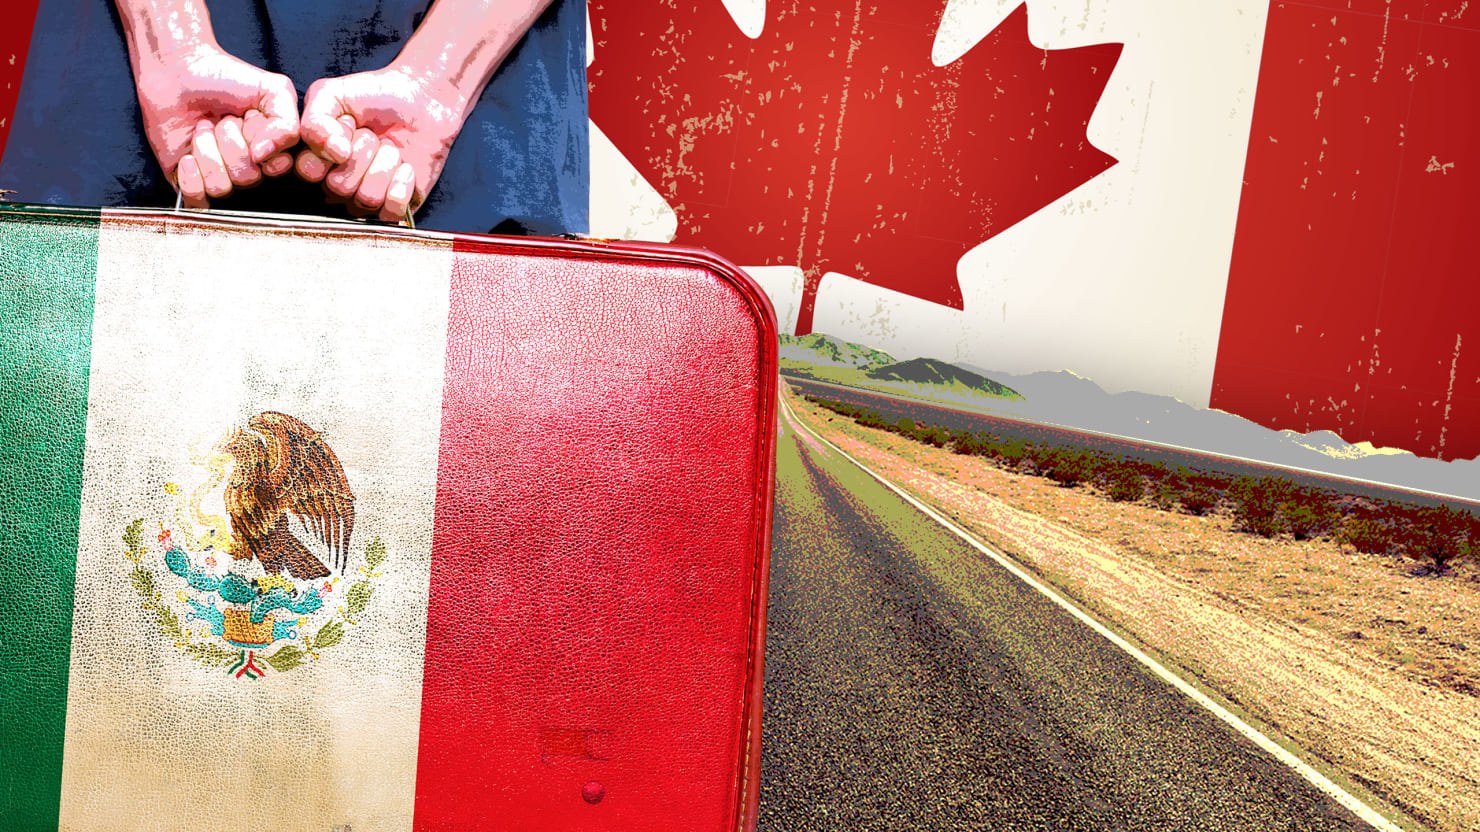 Mexican Immigrants Flee U.S. for Canada